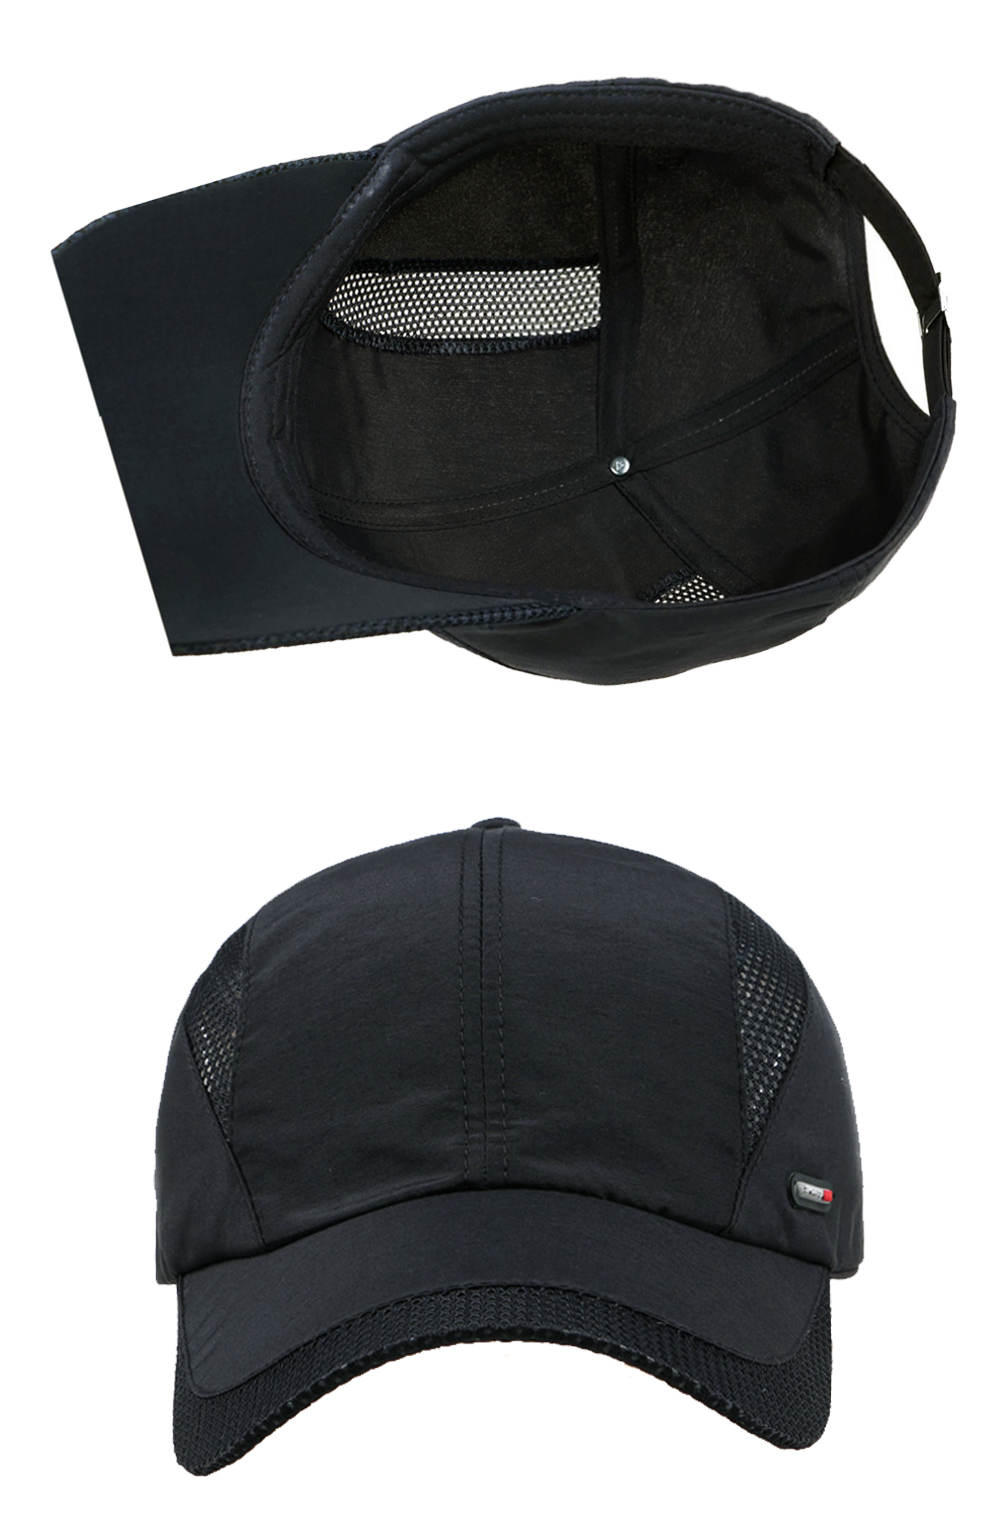 Cool Comfort Breathable Quick Dry Cap - Black Cap Inside and Front Views